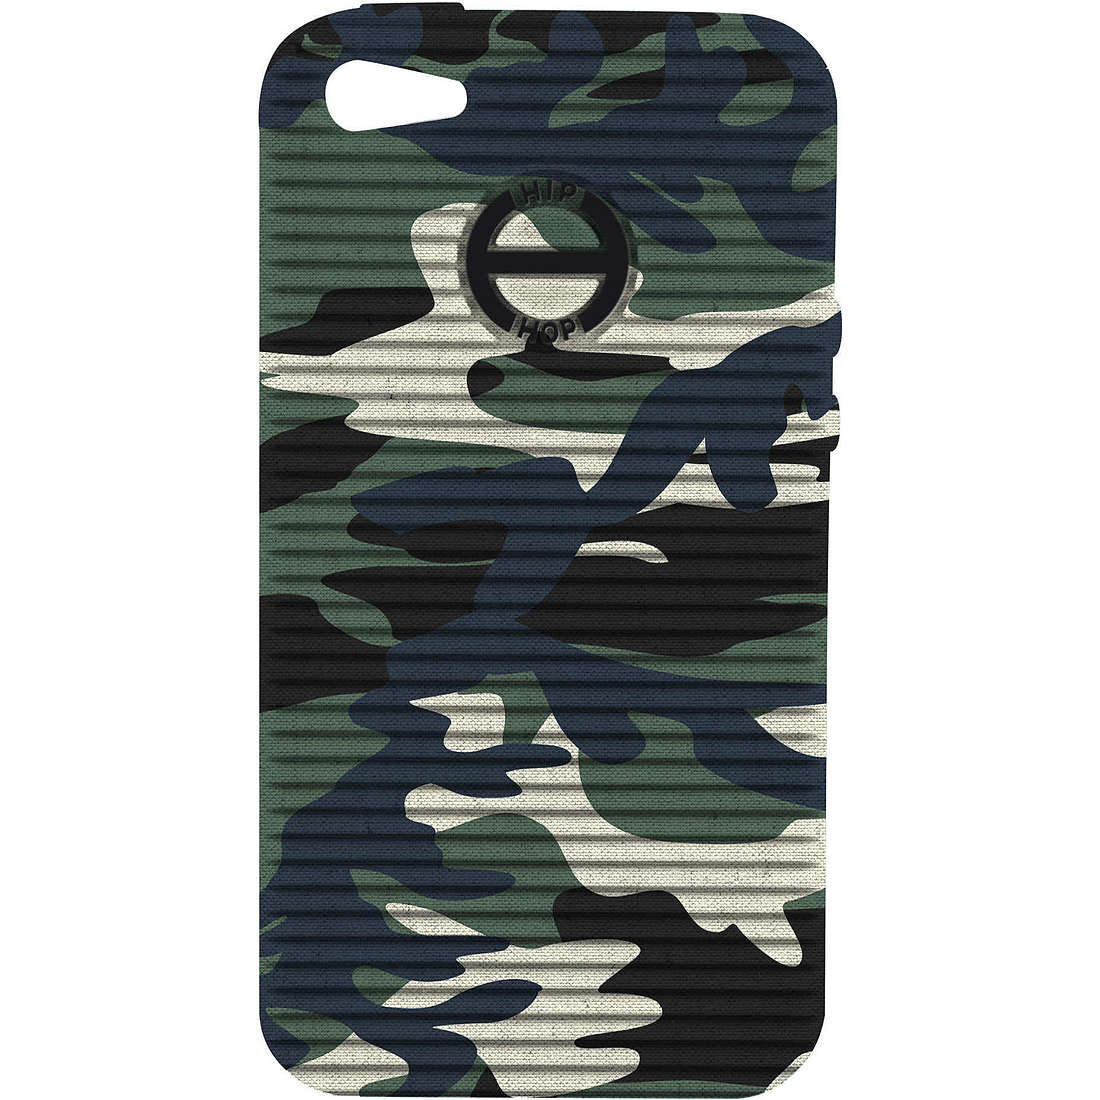 accessory unisex jewellery Hip Hop CAMOUFLAGE HCV0070